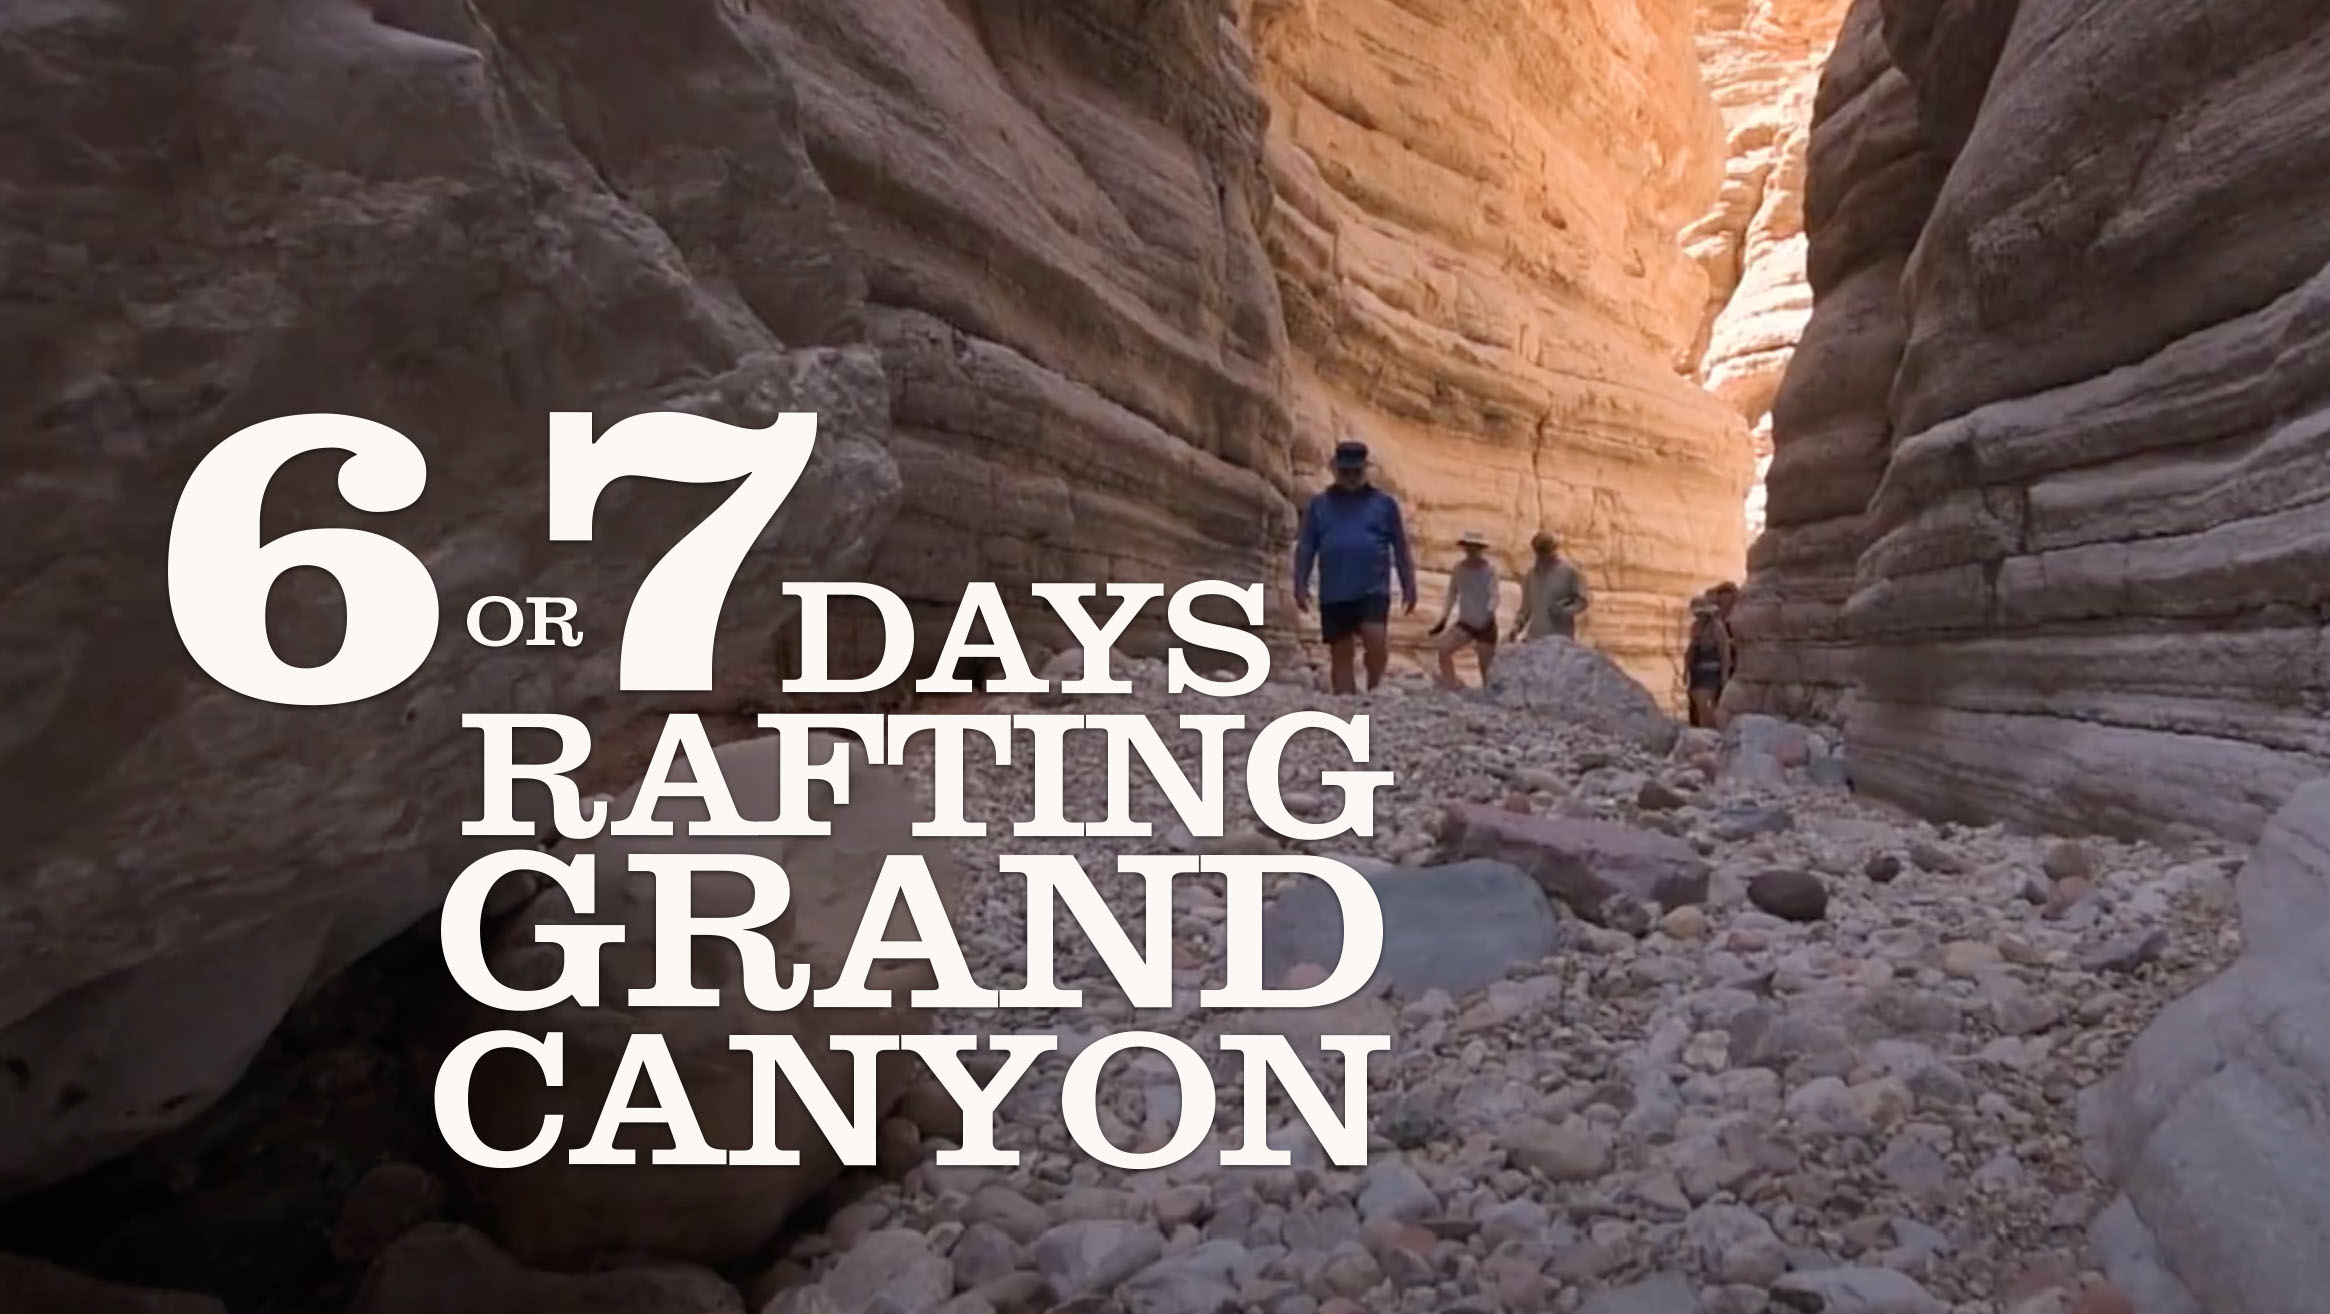 6-7 Days Rafting in Grand Canyon